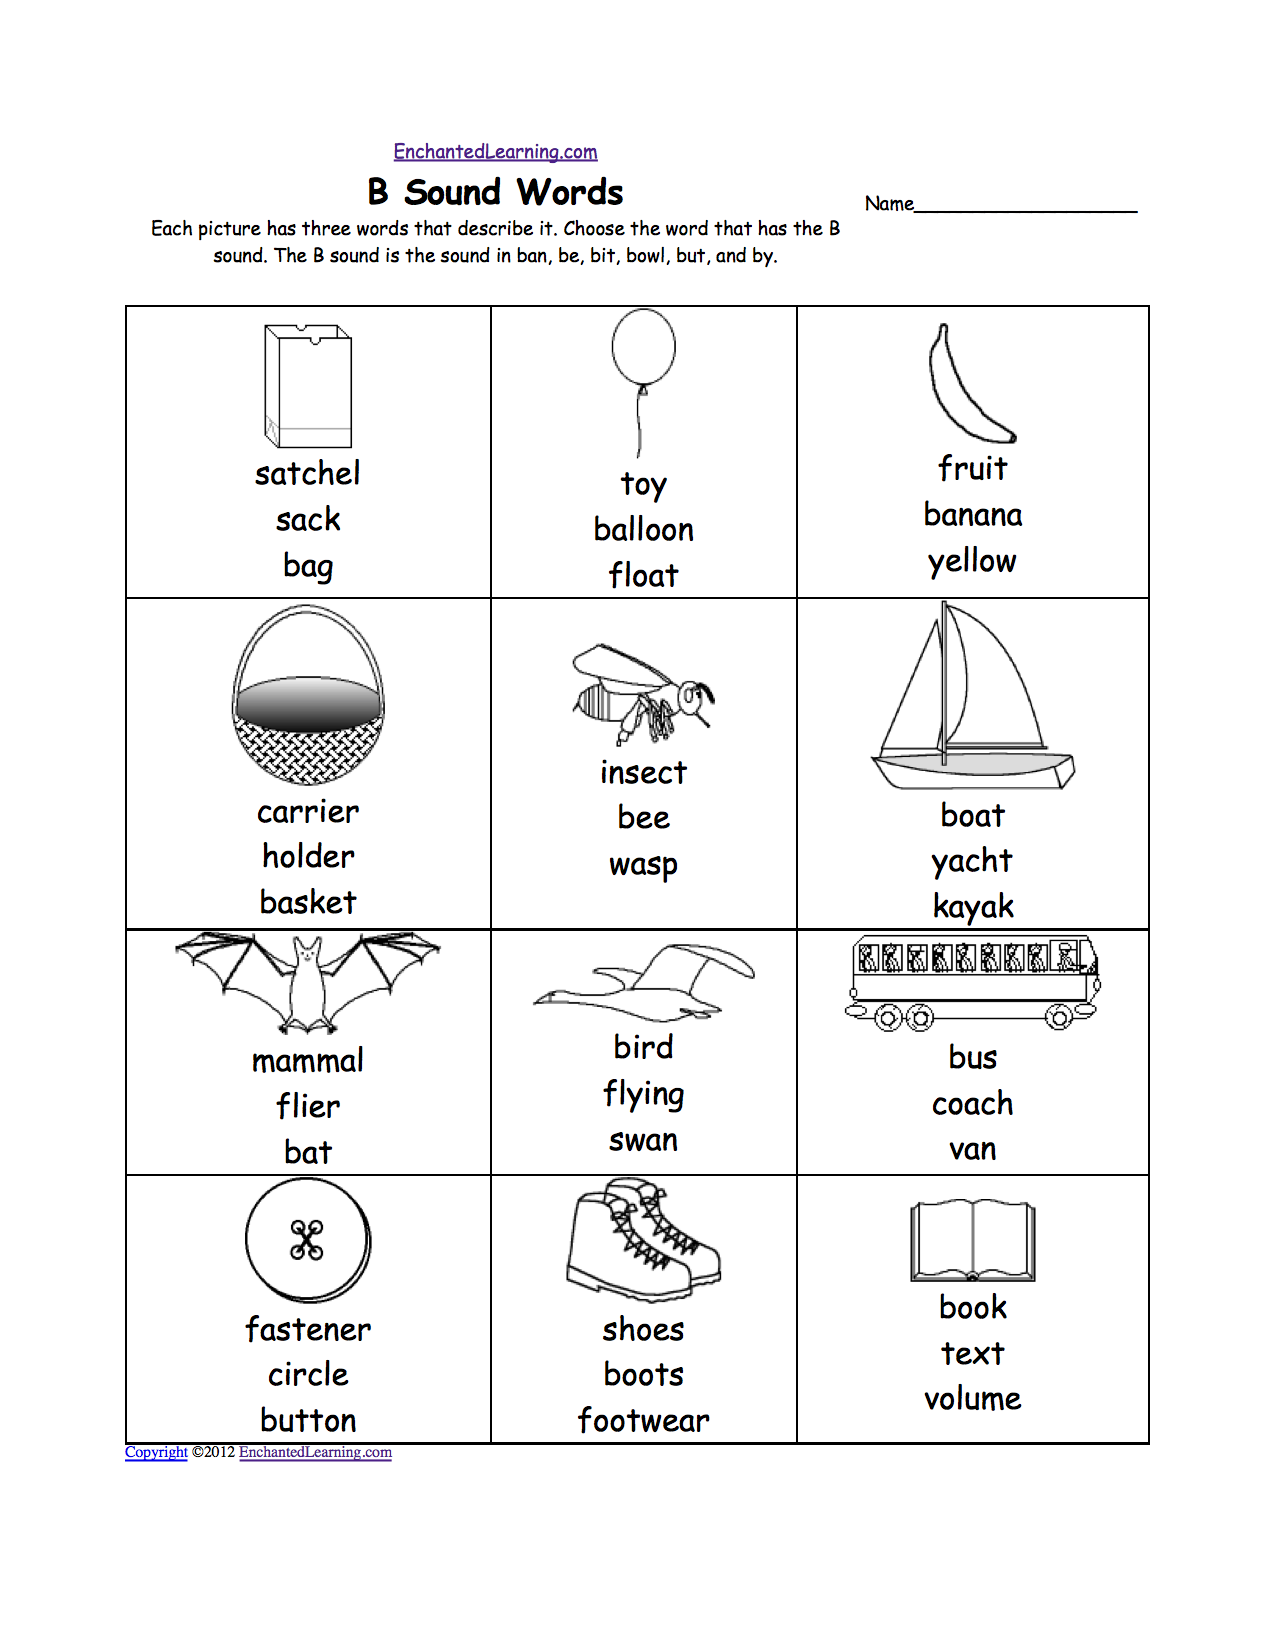 Weirdmailus  Gorgeous Phonics Worksheets Multiple Choice Worksheets To Print  With Luxury Quotbquot Sound Phonics Worksheet Multiple Choice Each Picture Has Three Words That Describe It Choose The Word That Has A Quotbquot Sound The Quotbquot Sound Is The Sound  With Lovely Sight Word Am Worksheet Also Easter Worksheets Esl In Addition Native American Pictographs Worksheet And Parts Of Flowers Worksheet As Well As Neither Nor Worksheets Additionally Synonyms Worksheets Ks From Enchantedlearningcom With Weirdmailus  Luxury Phonics Worksheets Multiple Choice Worksheets To Print  With Lovely Quotbquot Sound Phonics Worksheet Multiple Choice Each Picture Has Three Words That Describe It Choose The Word That Has A Quotbquot Sound The Quotbquot Sound Is The Sound  And Gorgeous Sight Word Am Worksheet Also Easter Worksheets Esl In Addition Native American Pictographs Worksheet From Enchantedlearningcom